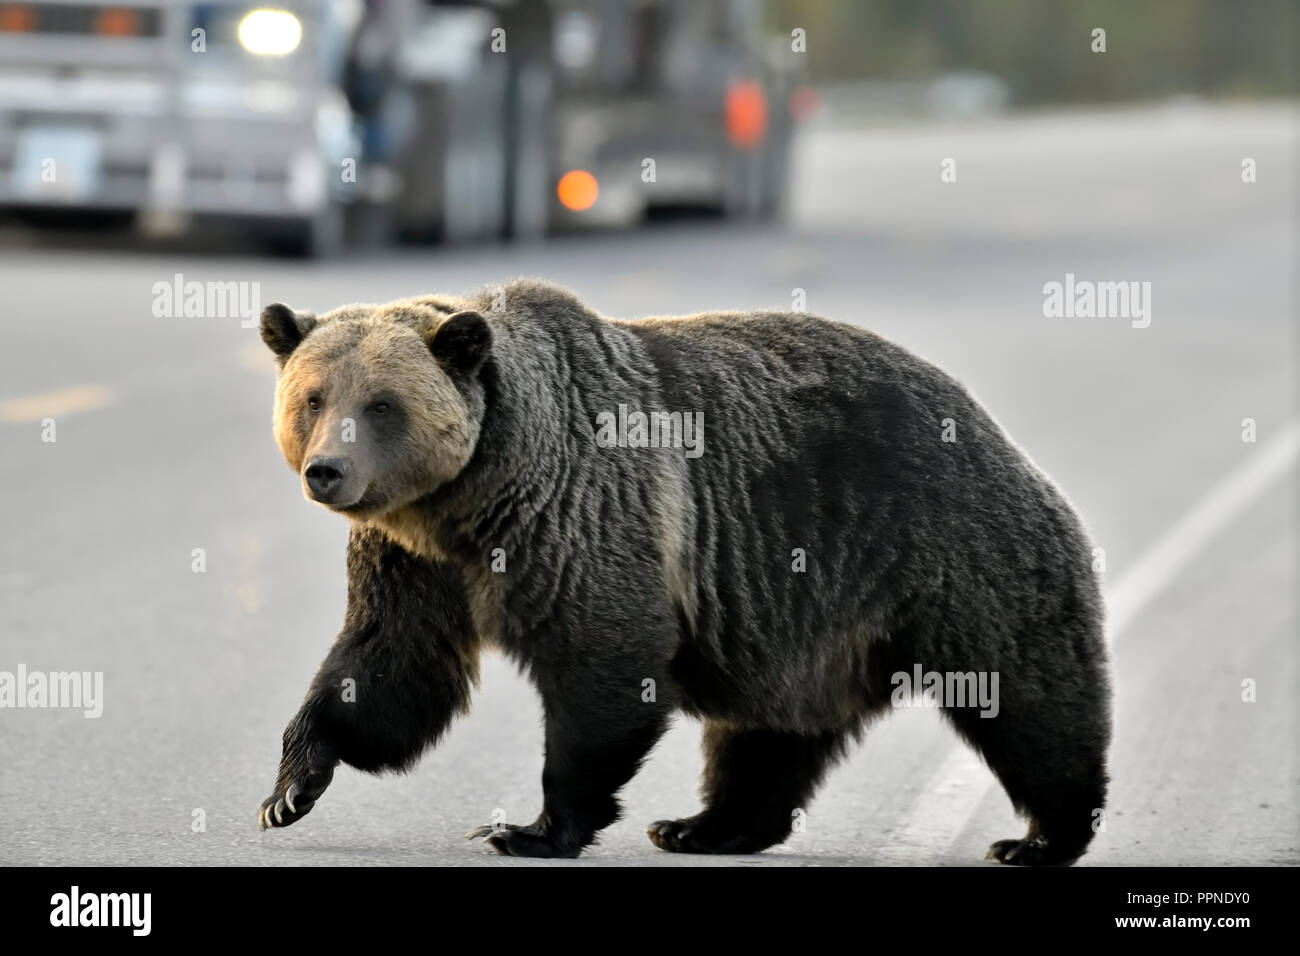 Grizzly bear walking - photo#29